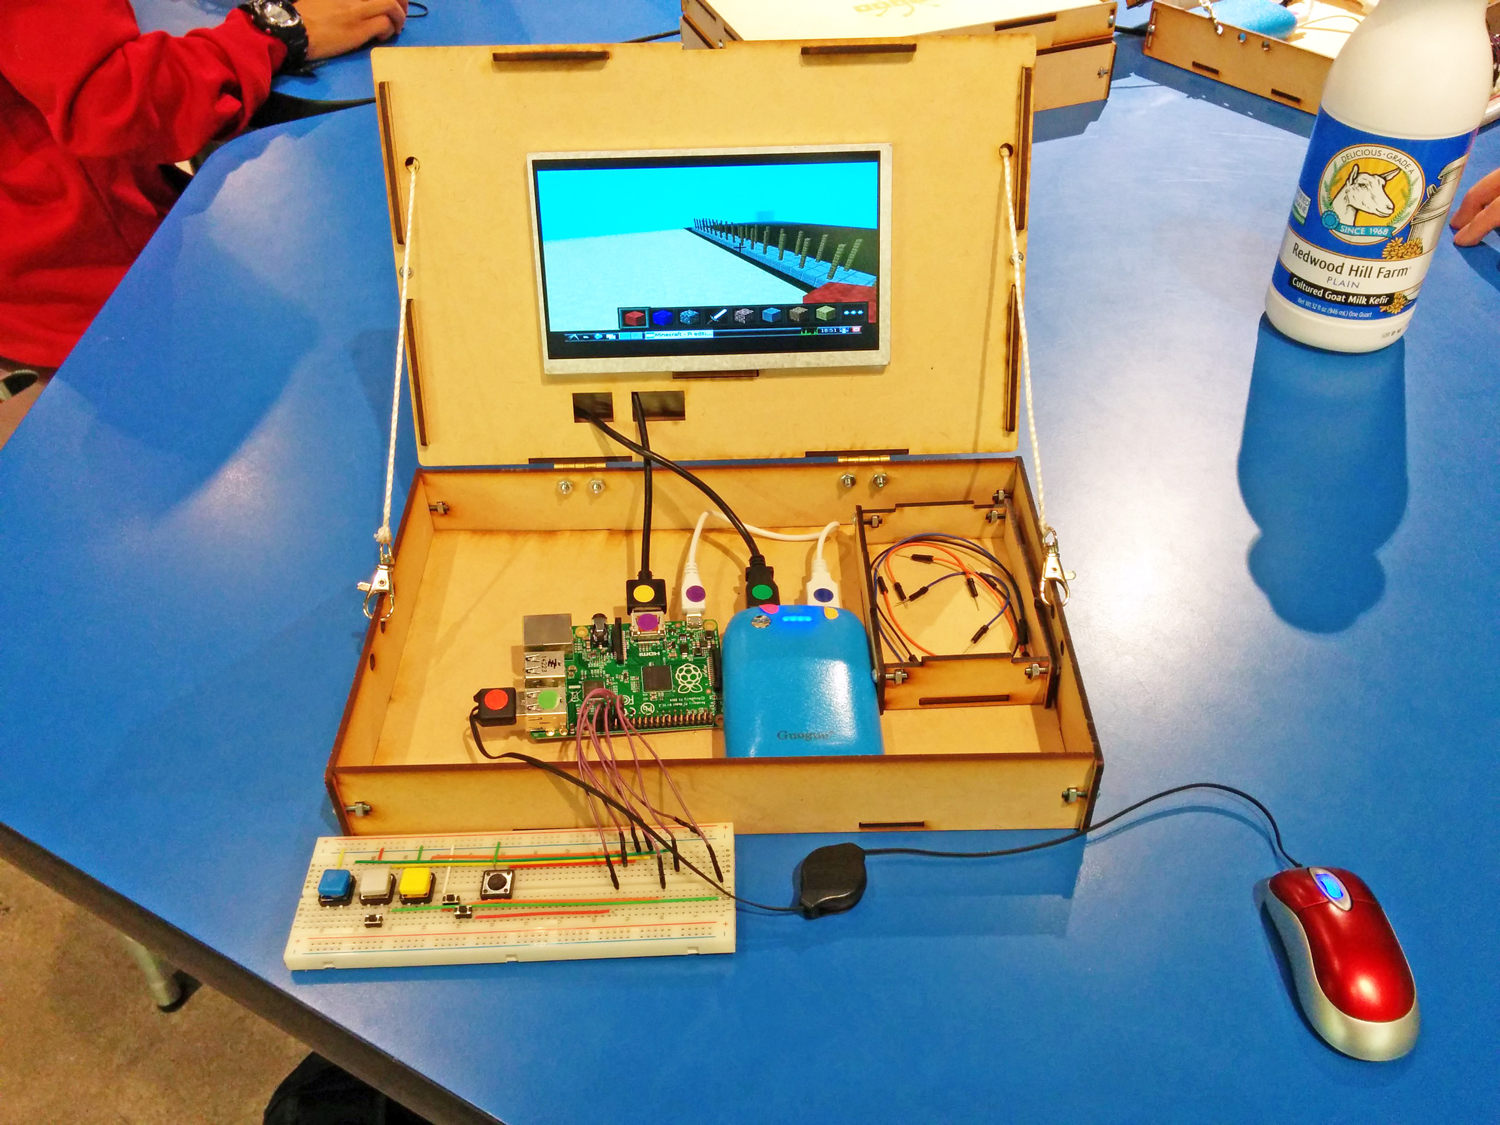 Learn DIY electronics by playing Minecraft